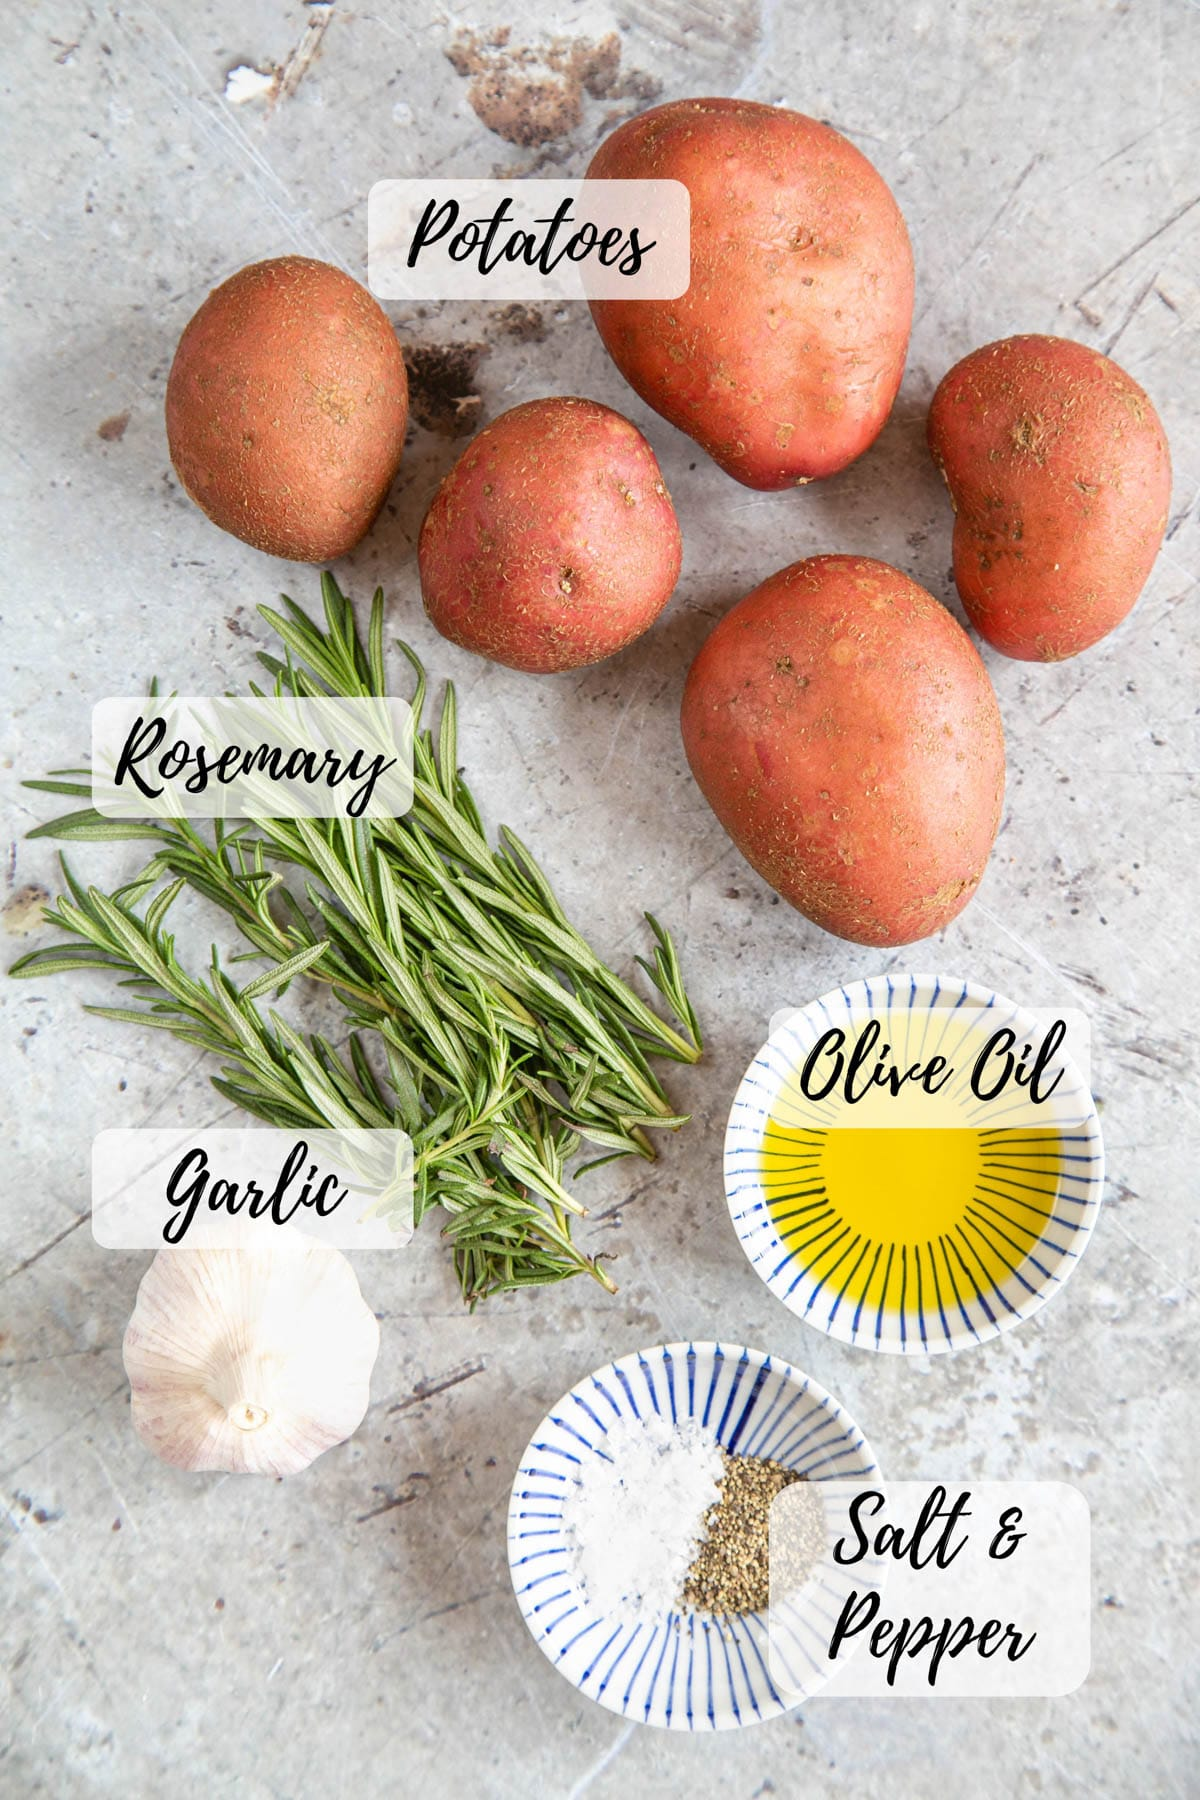 Ingredients for parmentier potatoes - potatoes, rosemary, garlic, olive oil, salt and pepper.